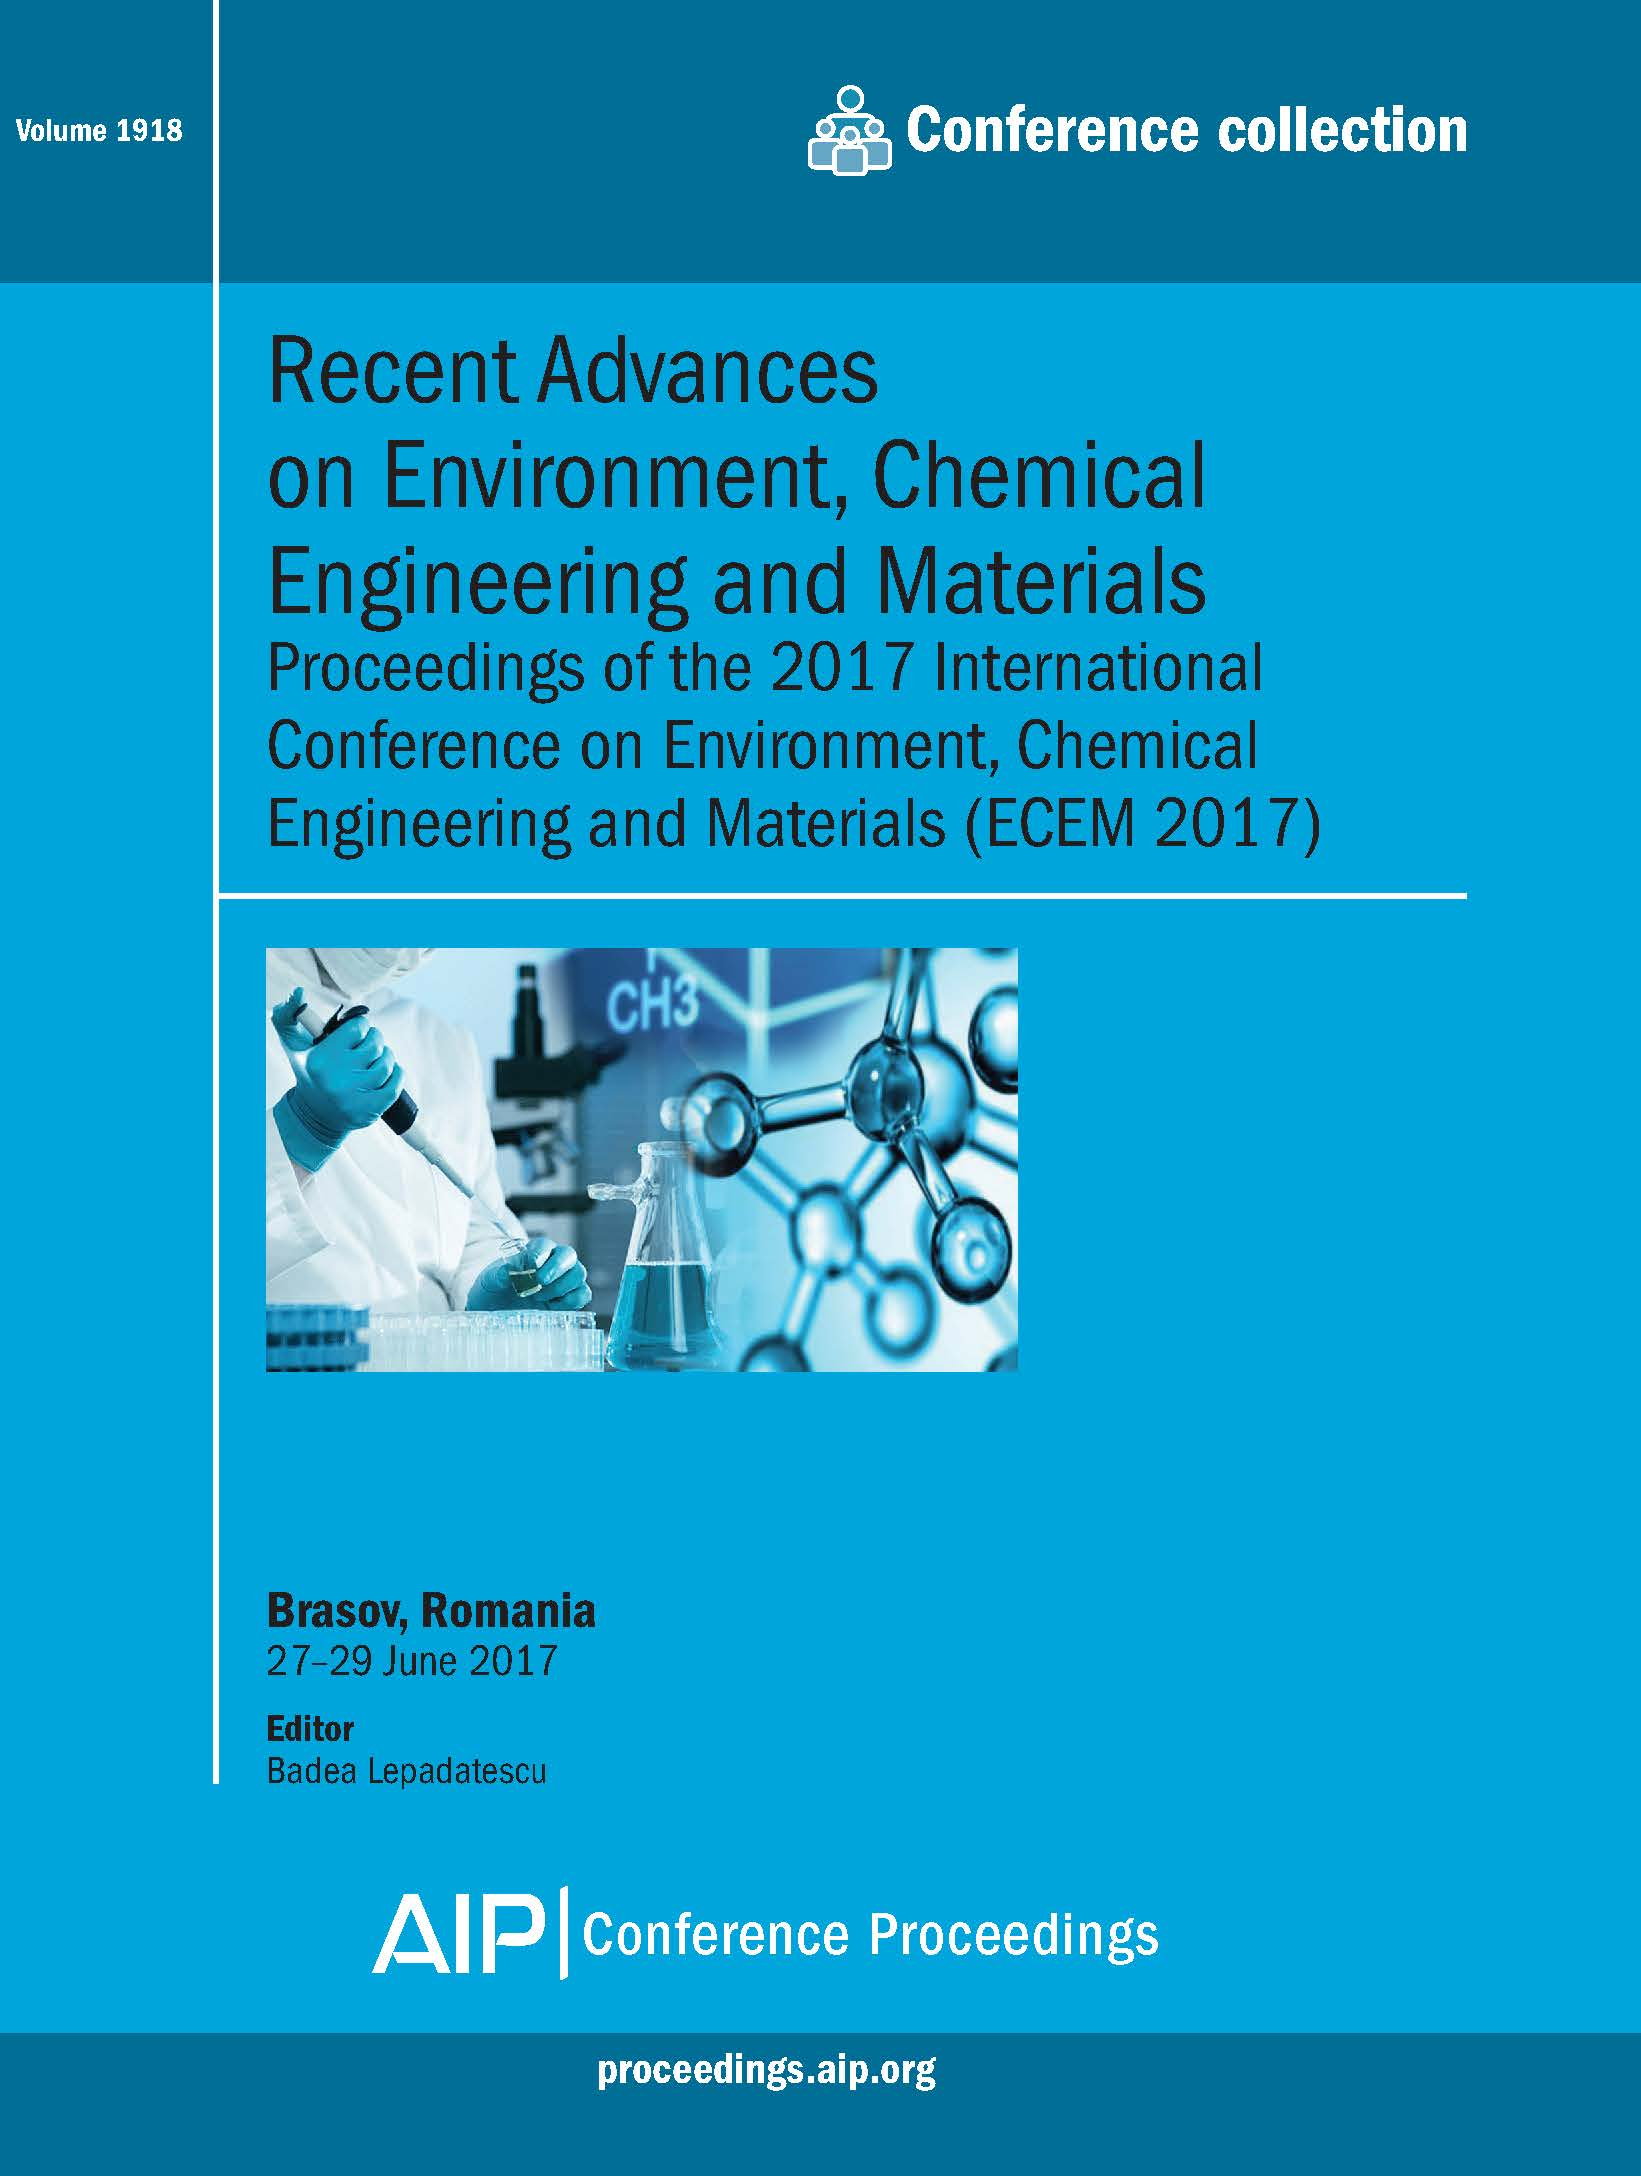 Volume 1918: Recent Advances on Environment, Chemical Engineering